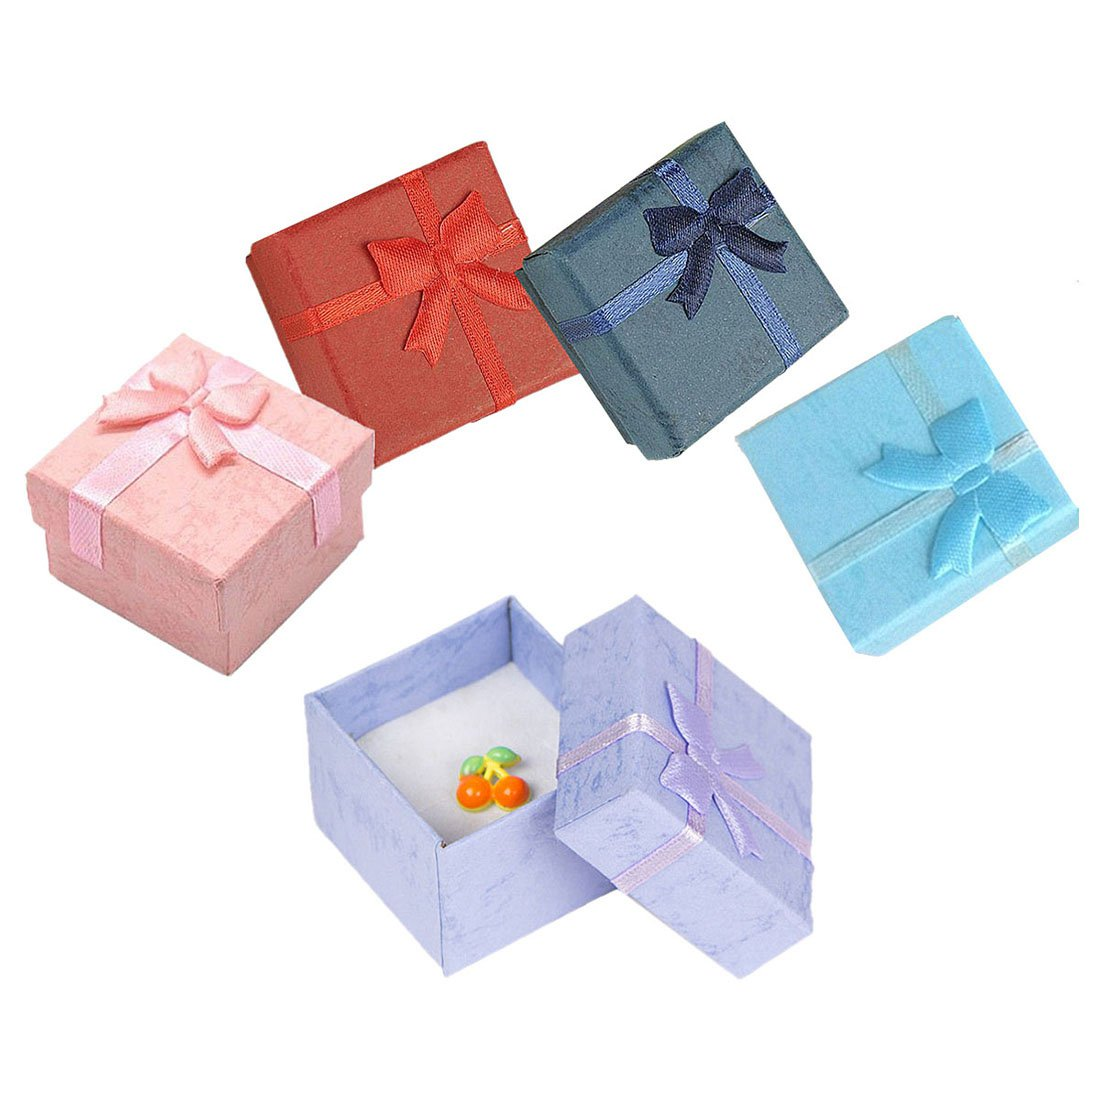 5 Pcs Fashion Colorful New Jewelry Organizer Box Rings Storage Cute Box Small Gift Box For Rings Earrings (3.5X3.5cm)